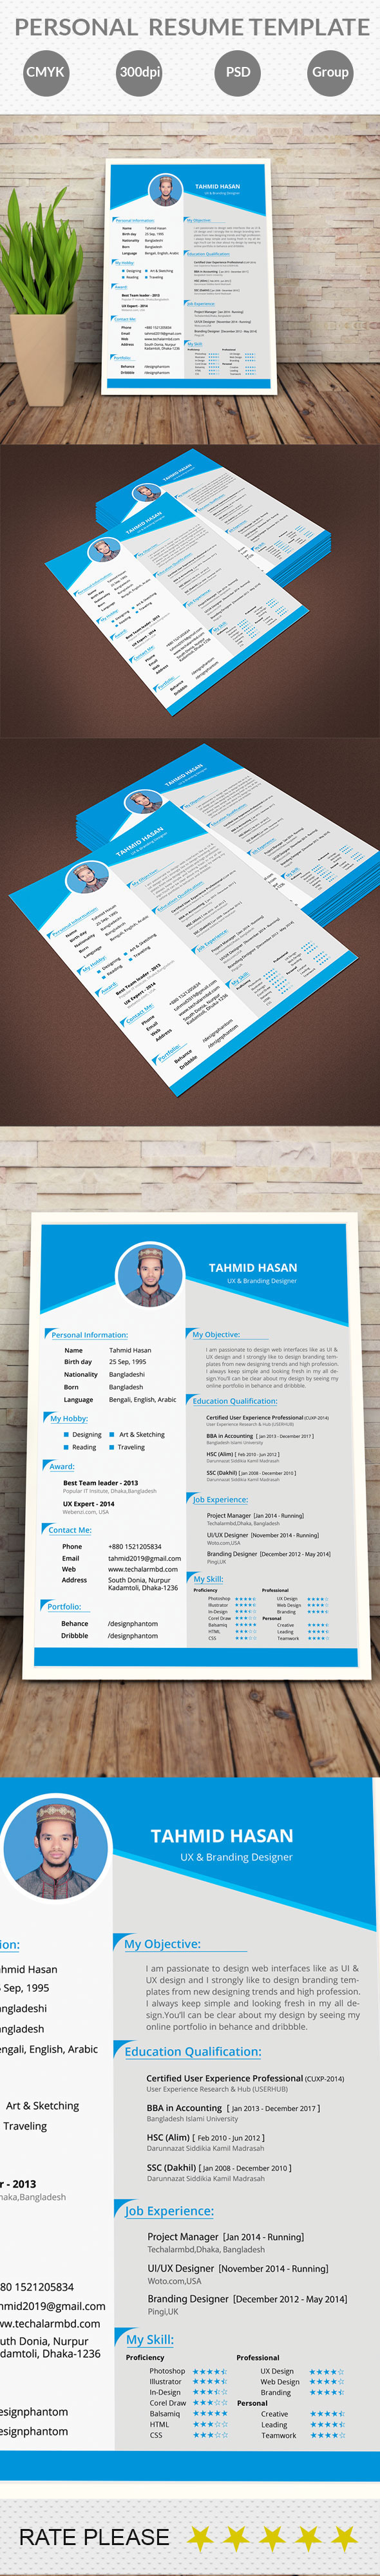 Personal Resume Template (Free Download) On Behance  Personal Resume Template